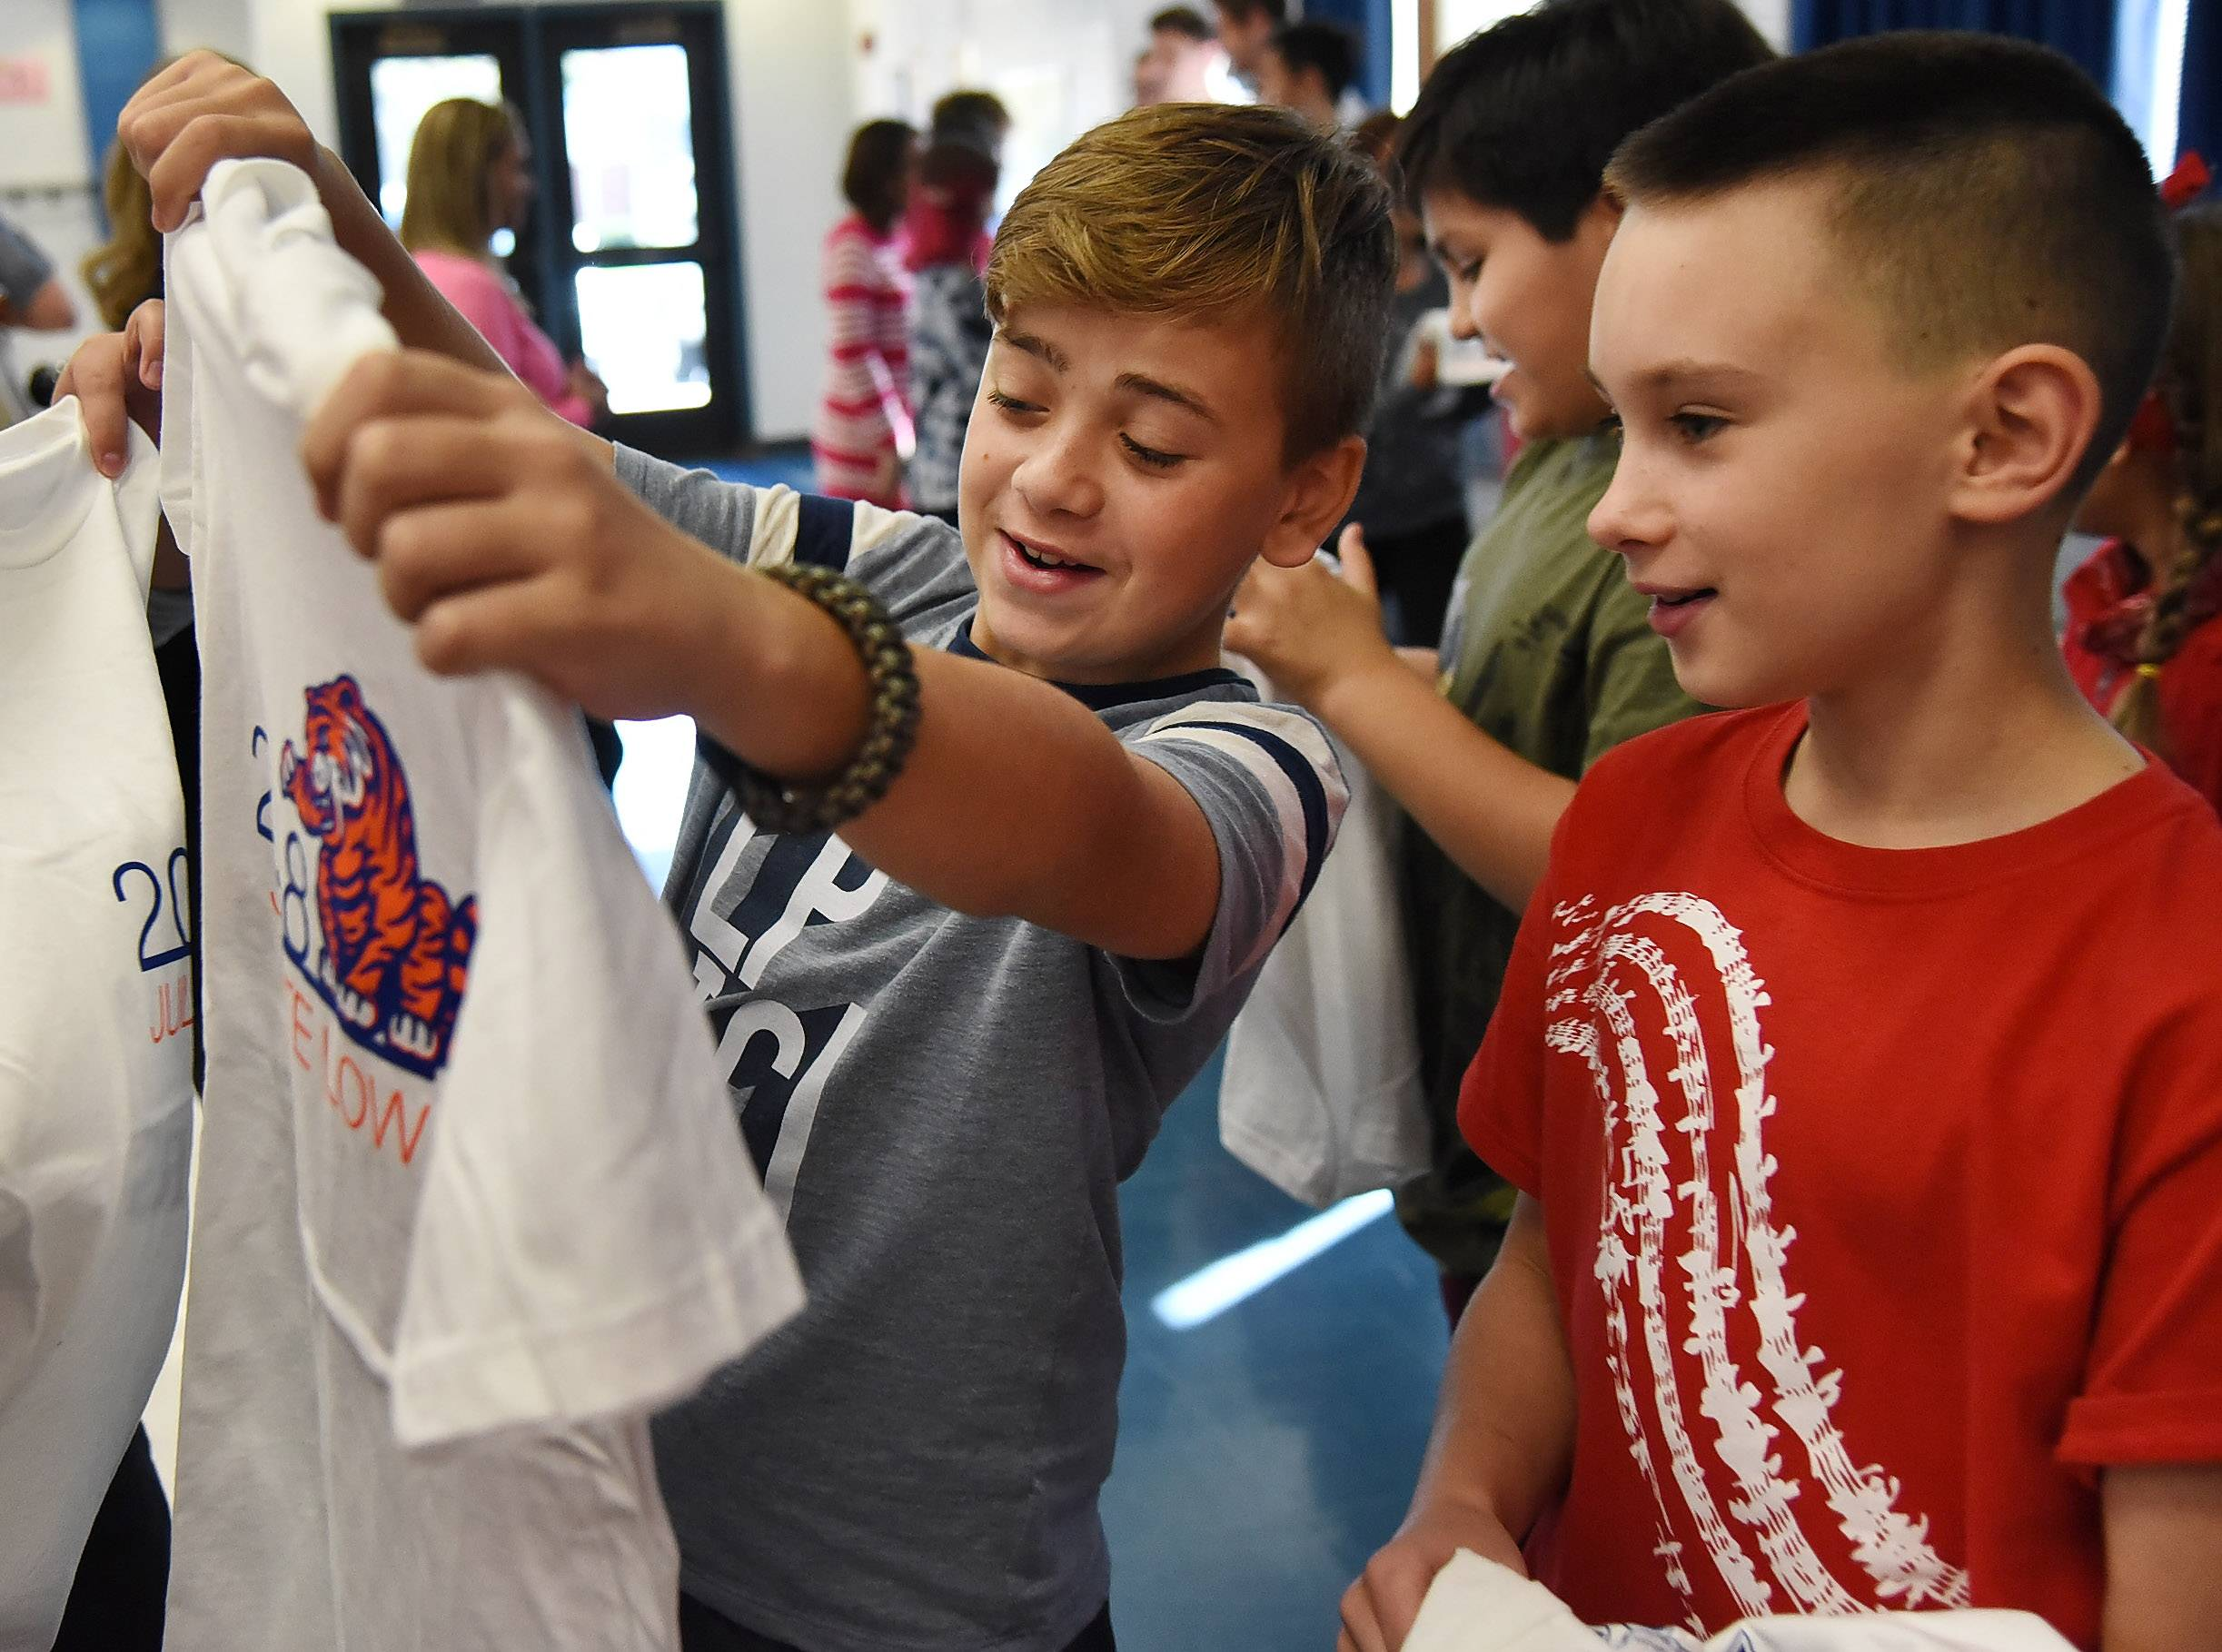 Juliette Low Elementary School fifth-graders Emi Stanev, left, and Max Pilat admire their new T-shirts, which were designed by Rolling Meadows High School students.